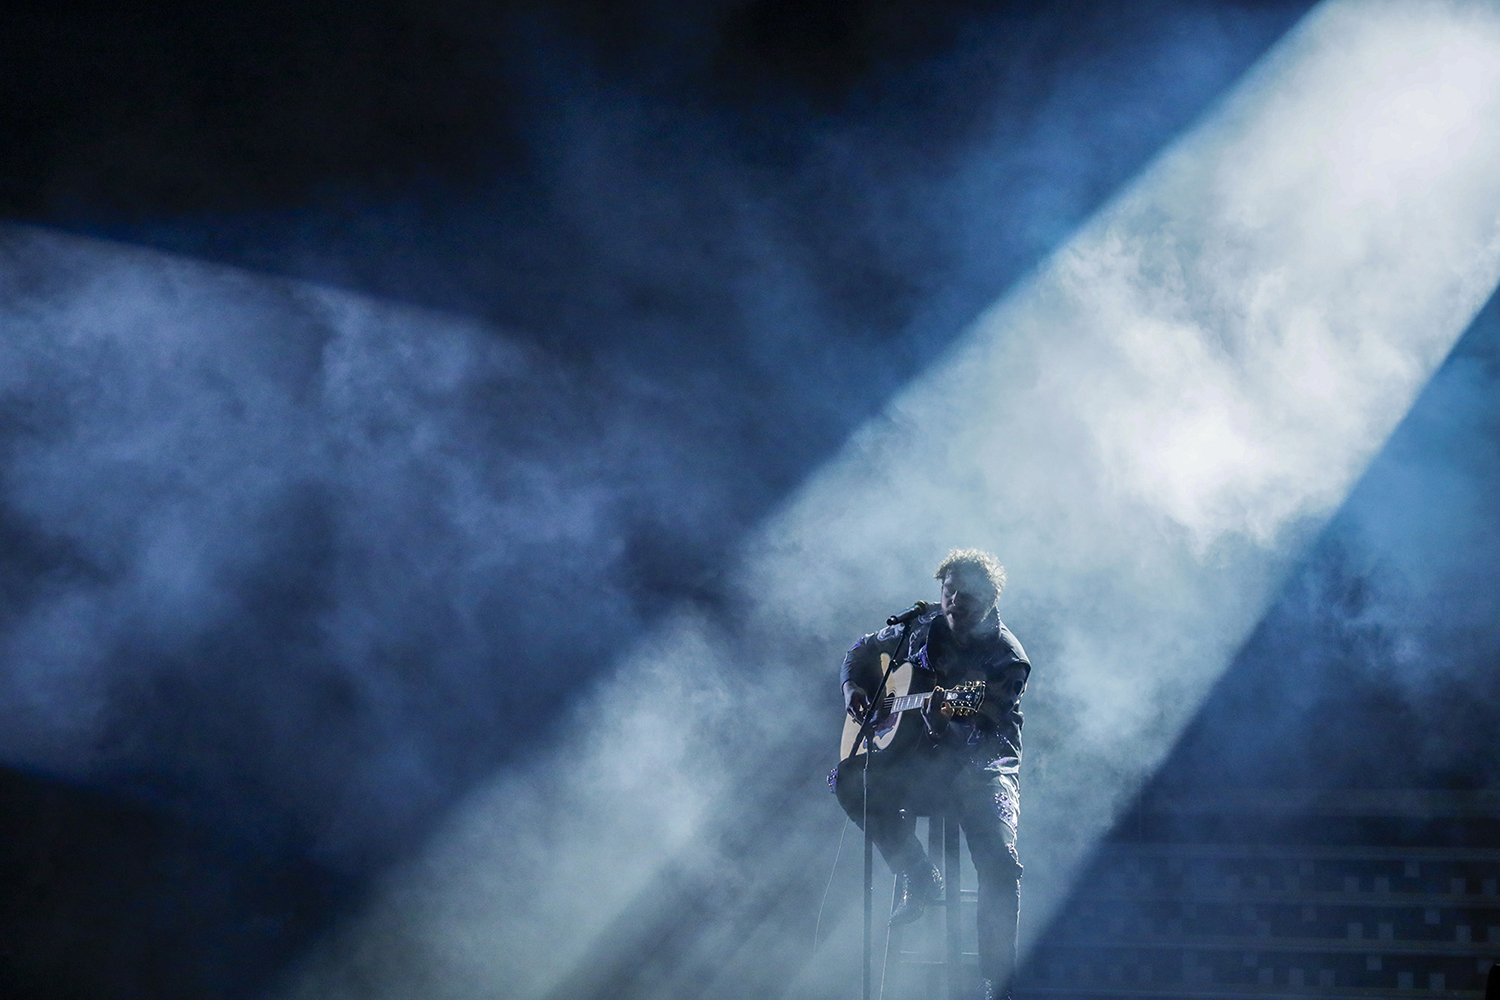 Post Malone performs during the 61st Grammy Awards at Staples Center in Los Angeles on Sunday, Feb. 10, 2019. (Robert Gauthier/Los Angeles Times/TNS)